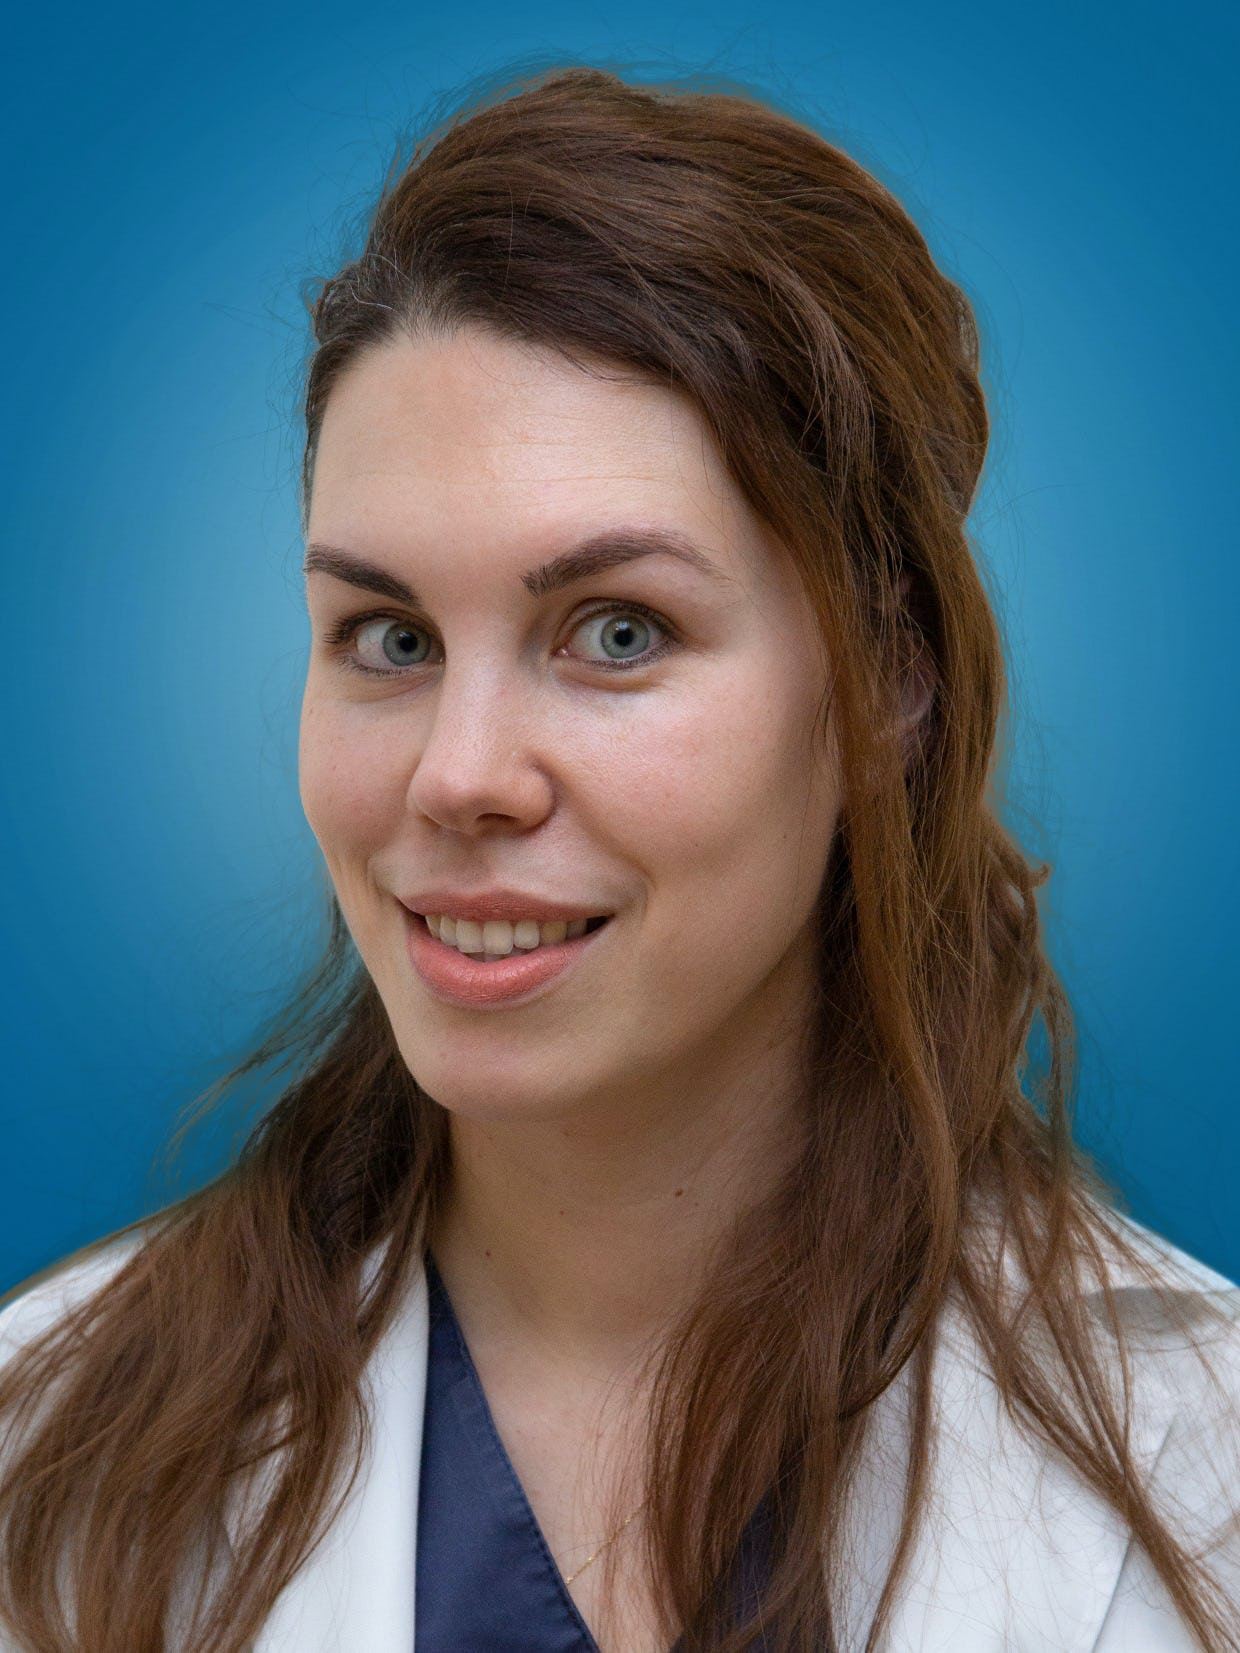 Dr. Caterina Loghin - Medic Specialist Cardiolog